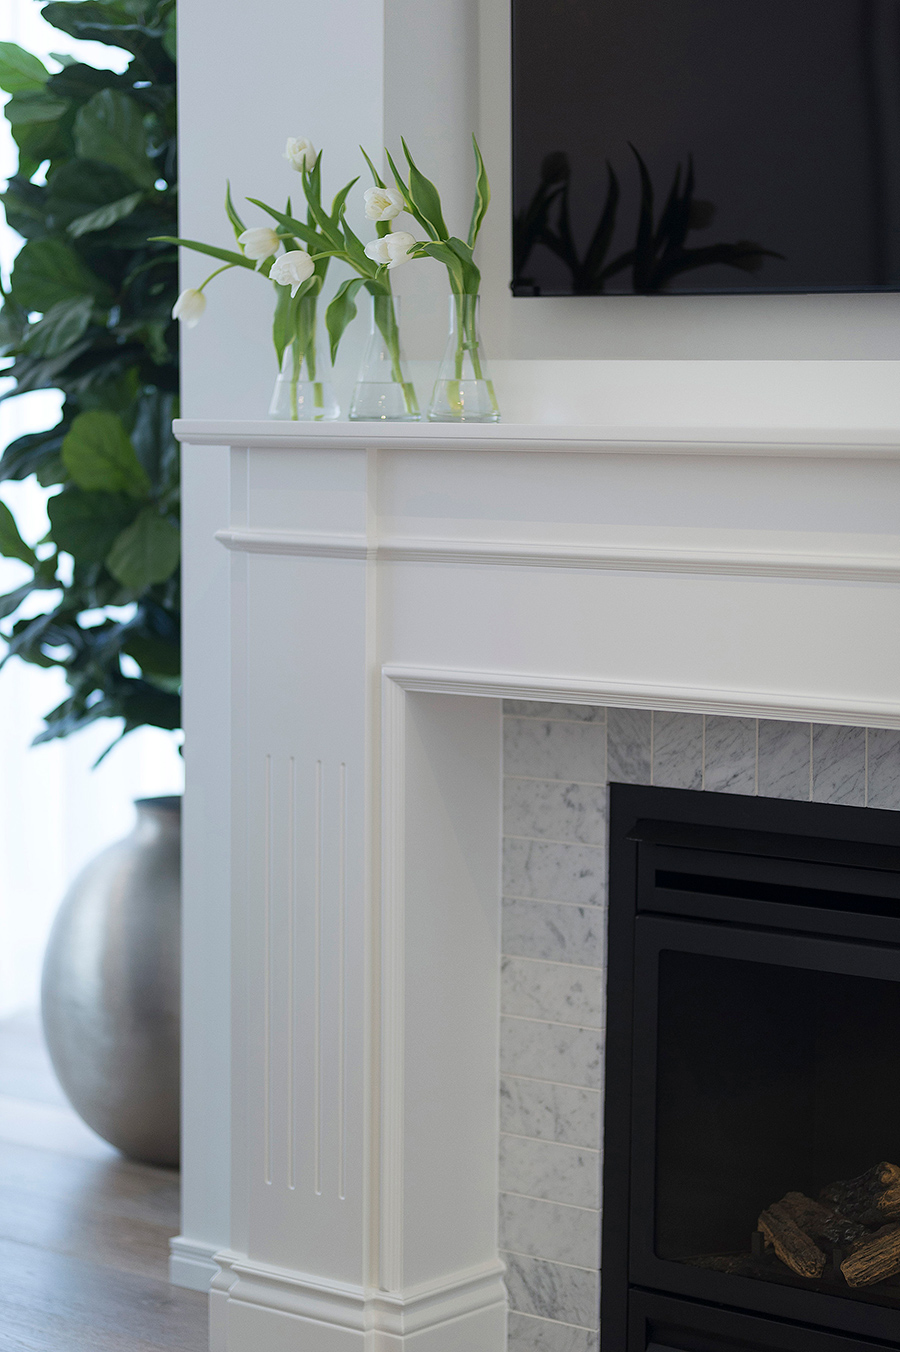 Wood Marble and White fireplace joinery